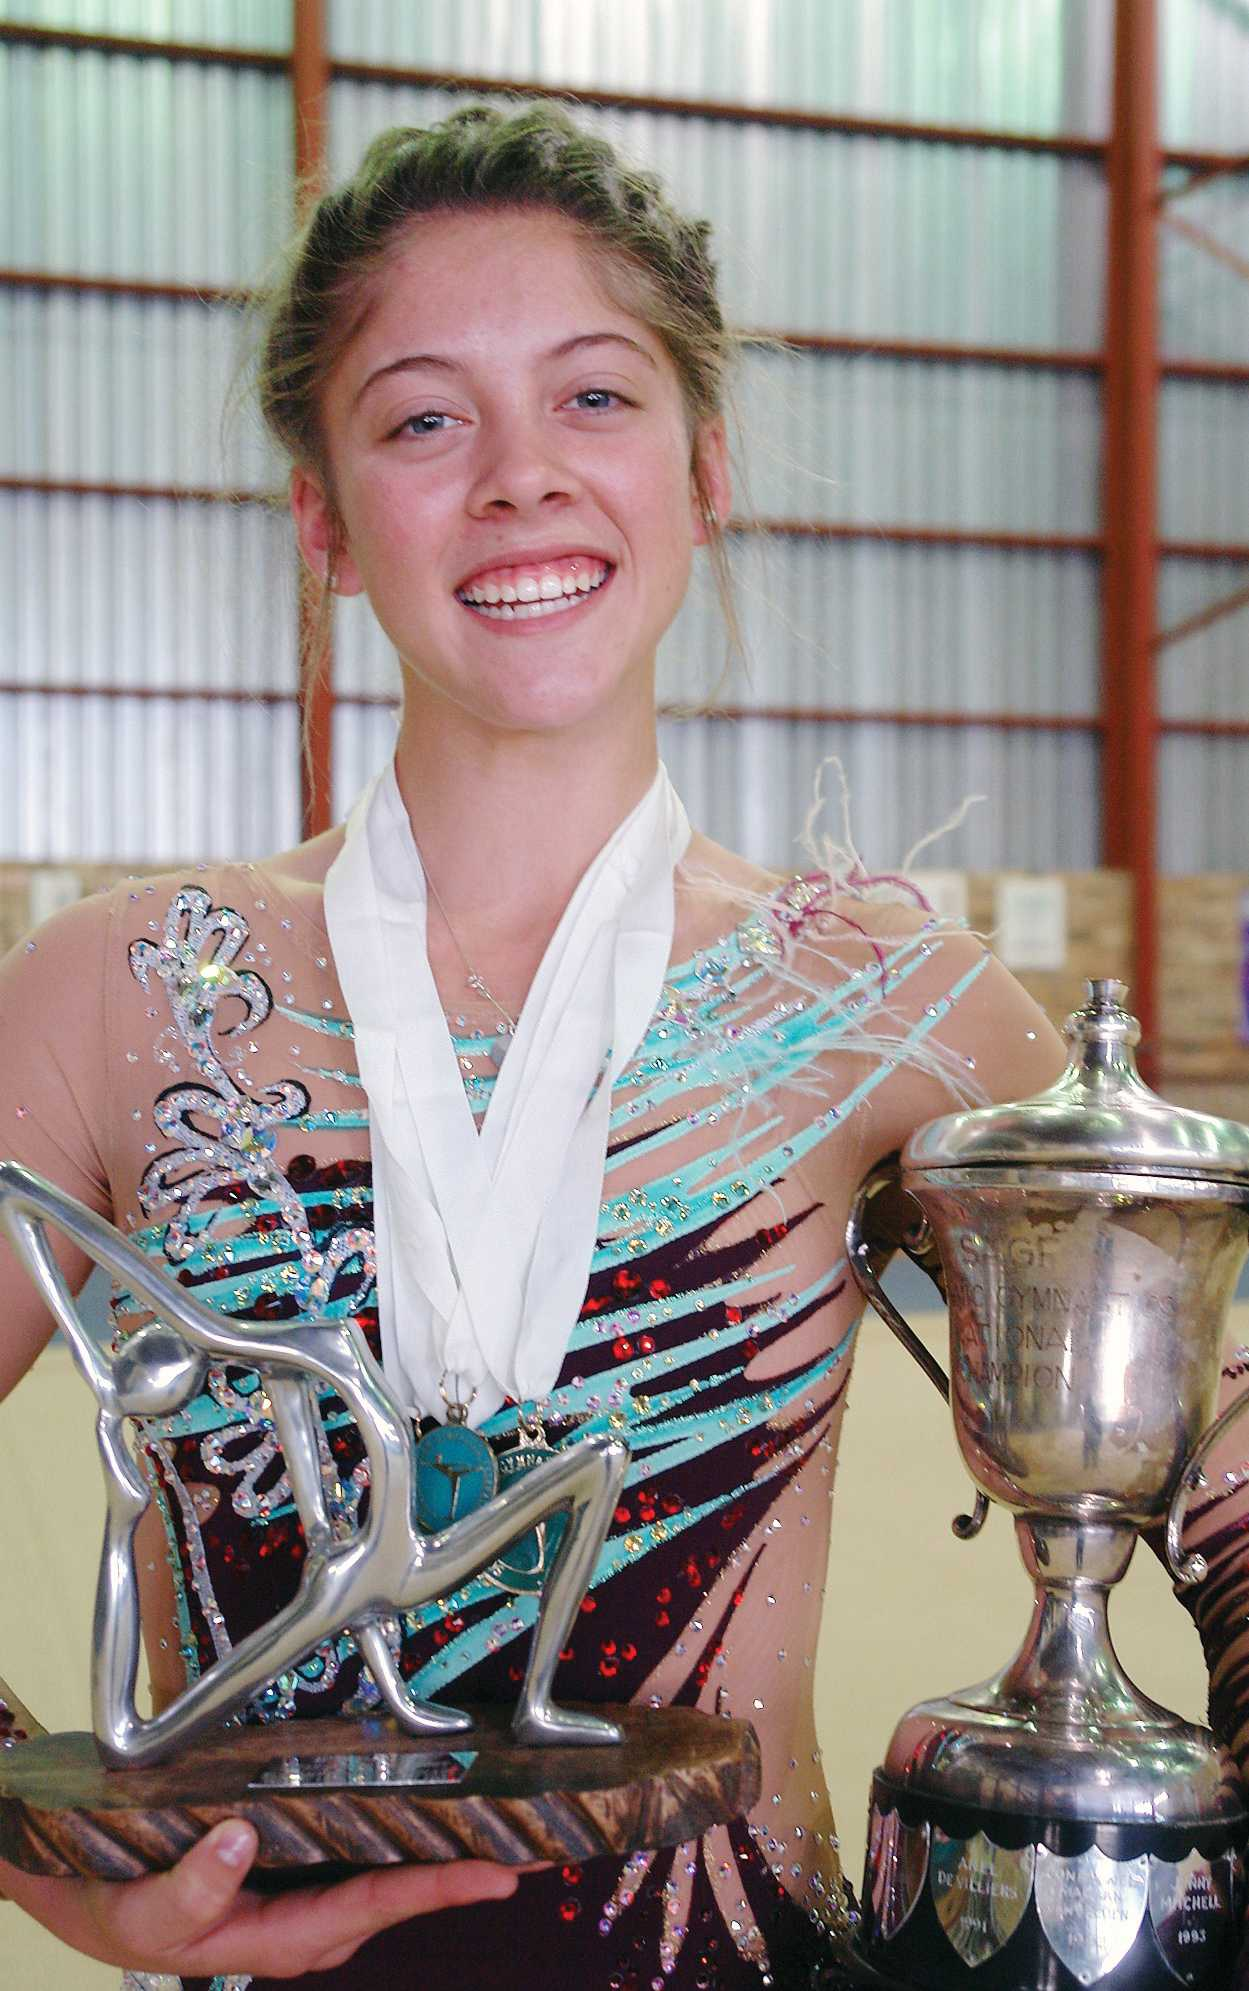 Lilica Burger (15) was awarded as Best Senior Olympic Gymnast and Miss Elegance at the recent National Gym Games.